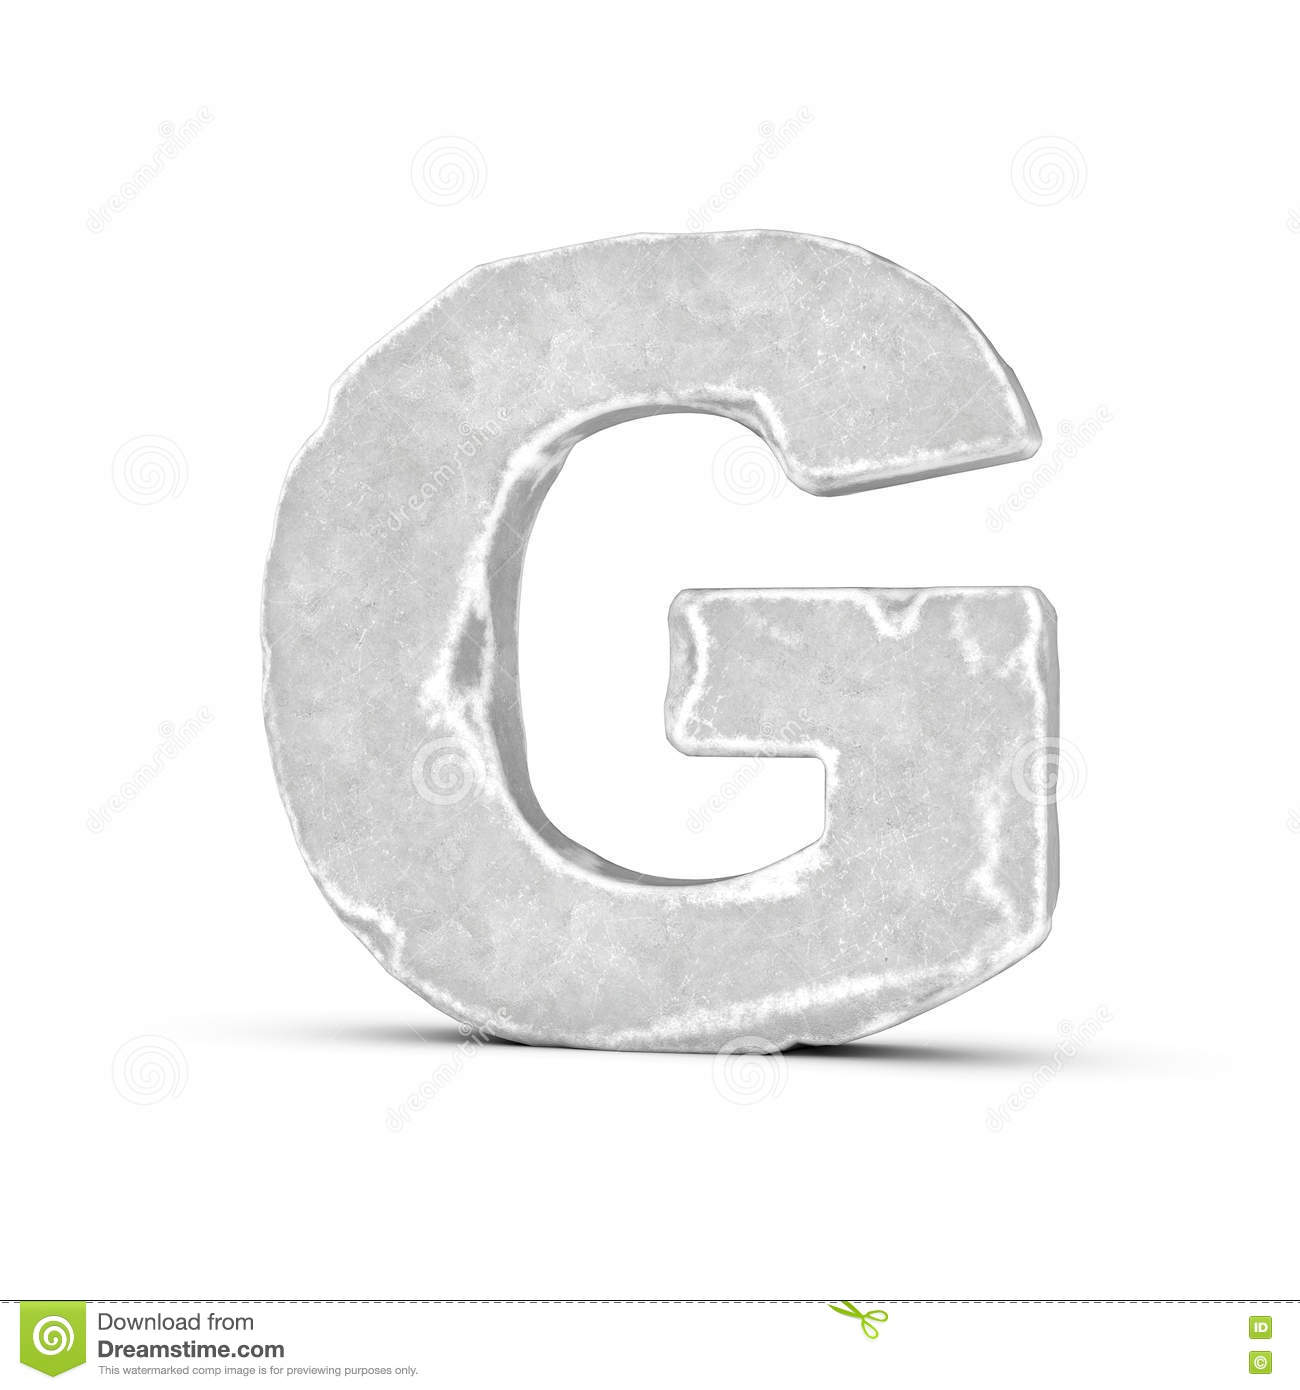 Rendering Of Stone Letter G Isolated On White Background Stock